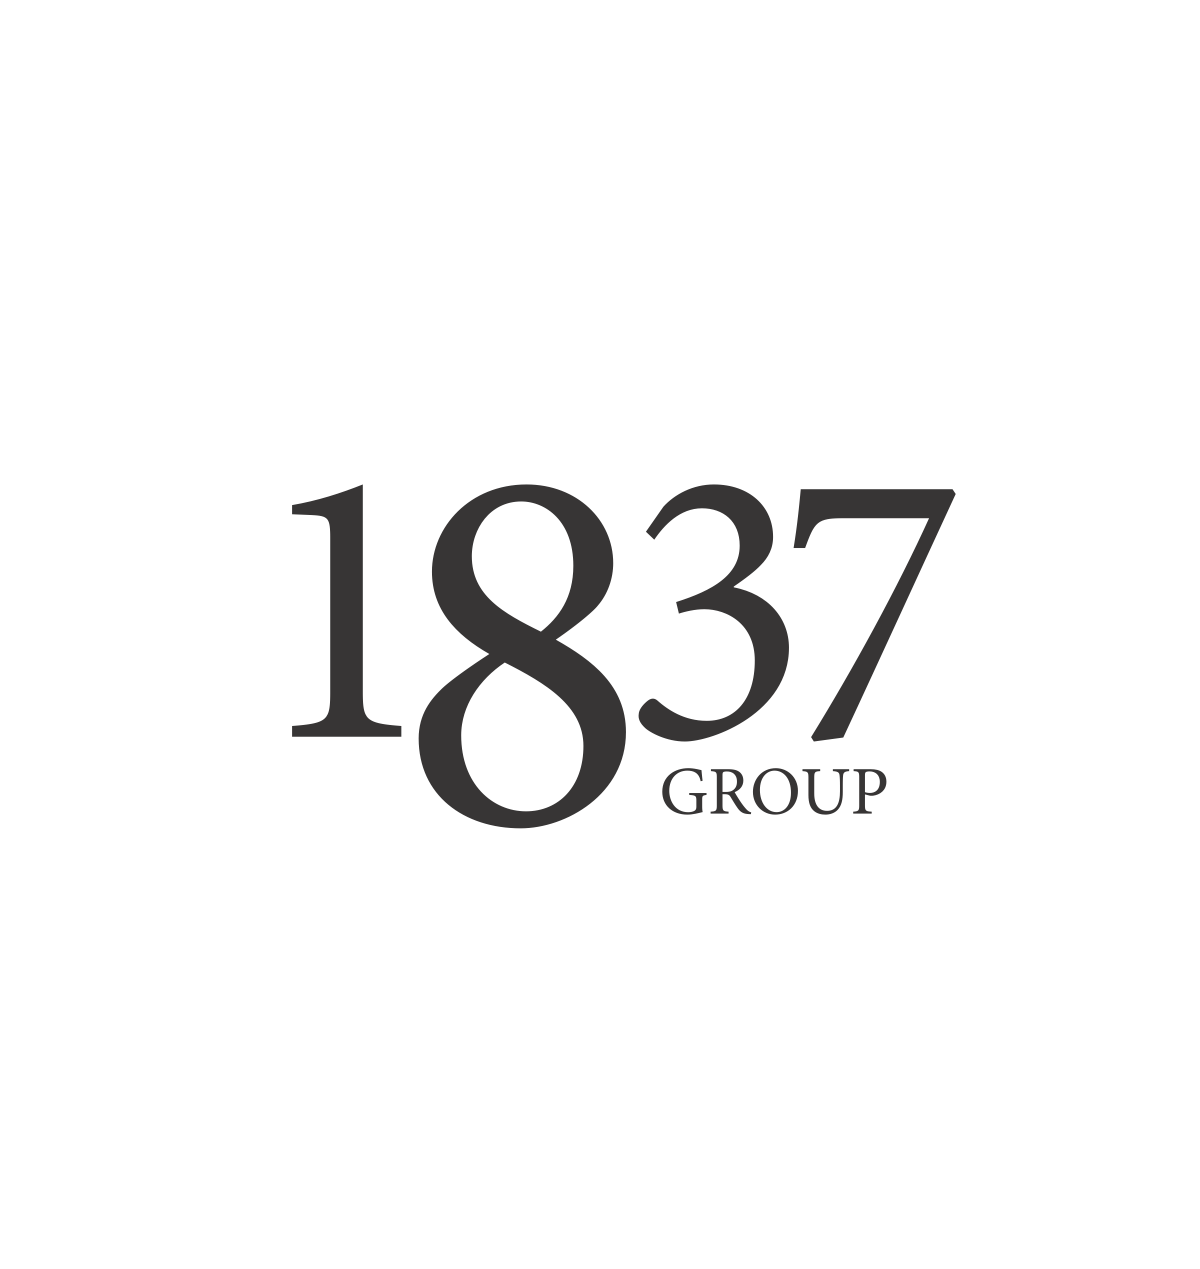 1837 Group